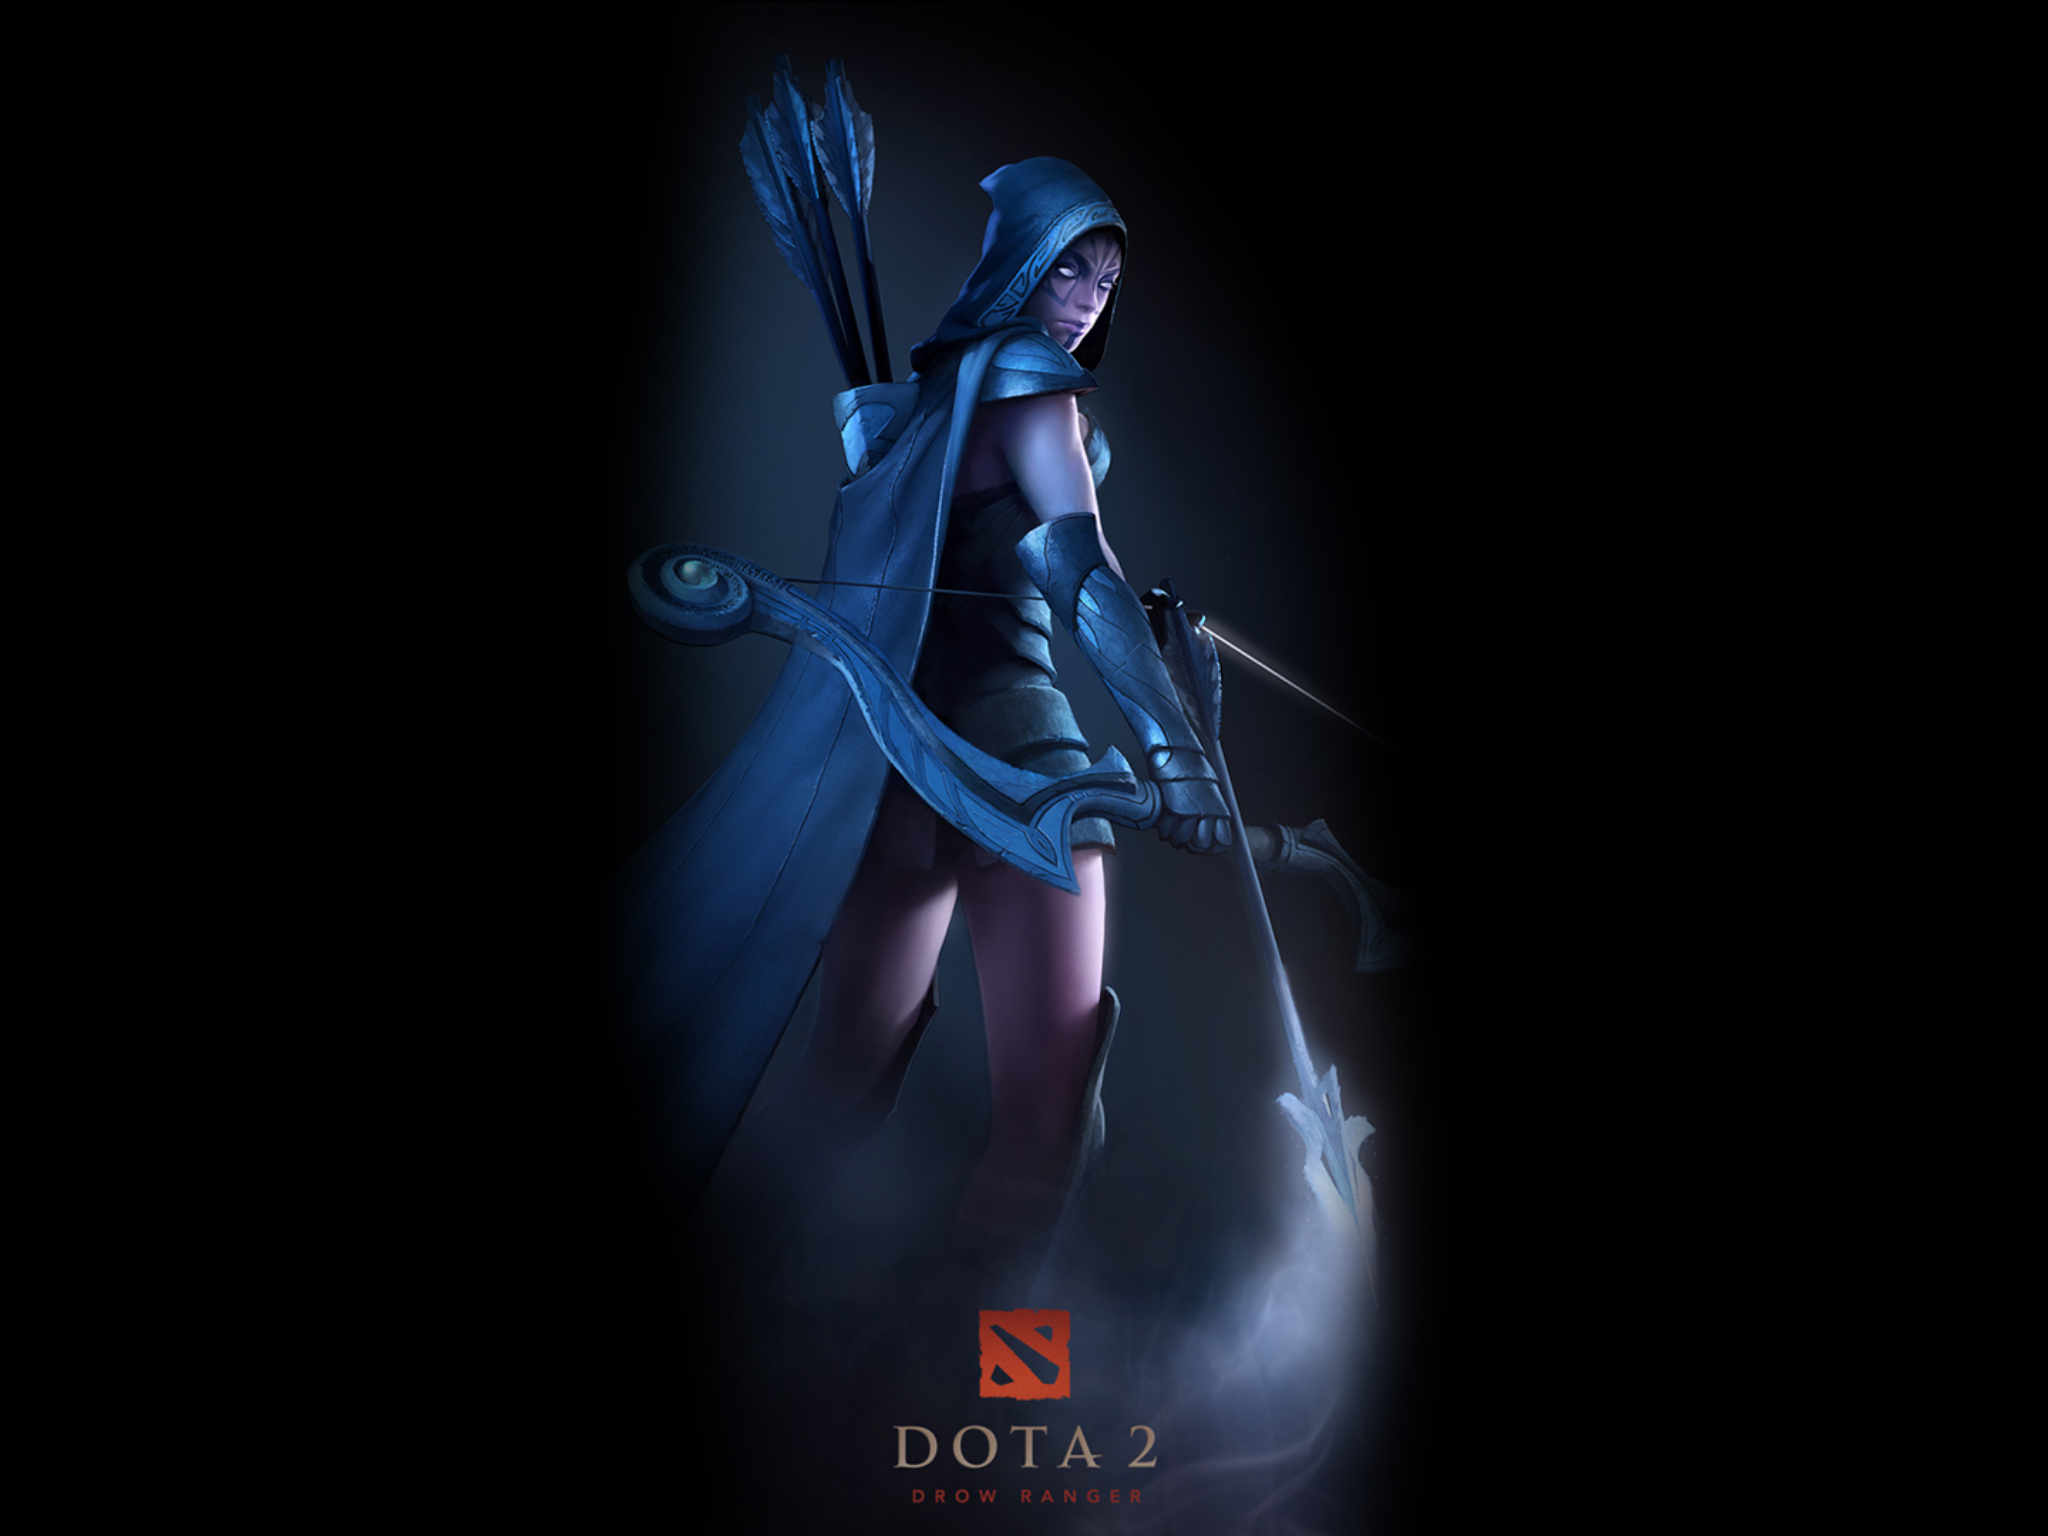 12 Drow Ranger DotA 2 HD Wallpapers Background Images 2048x1536